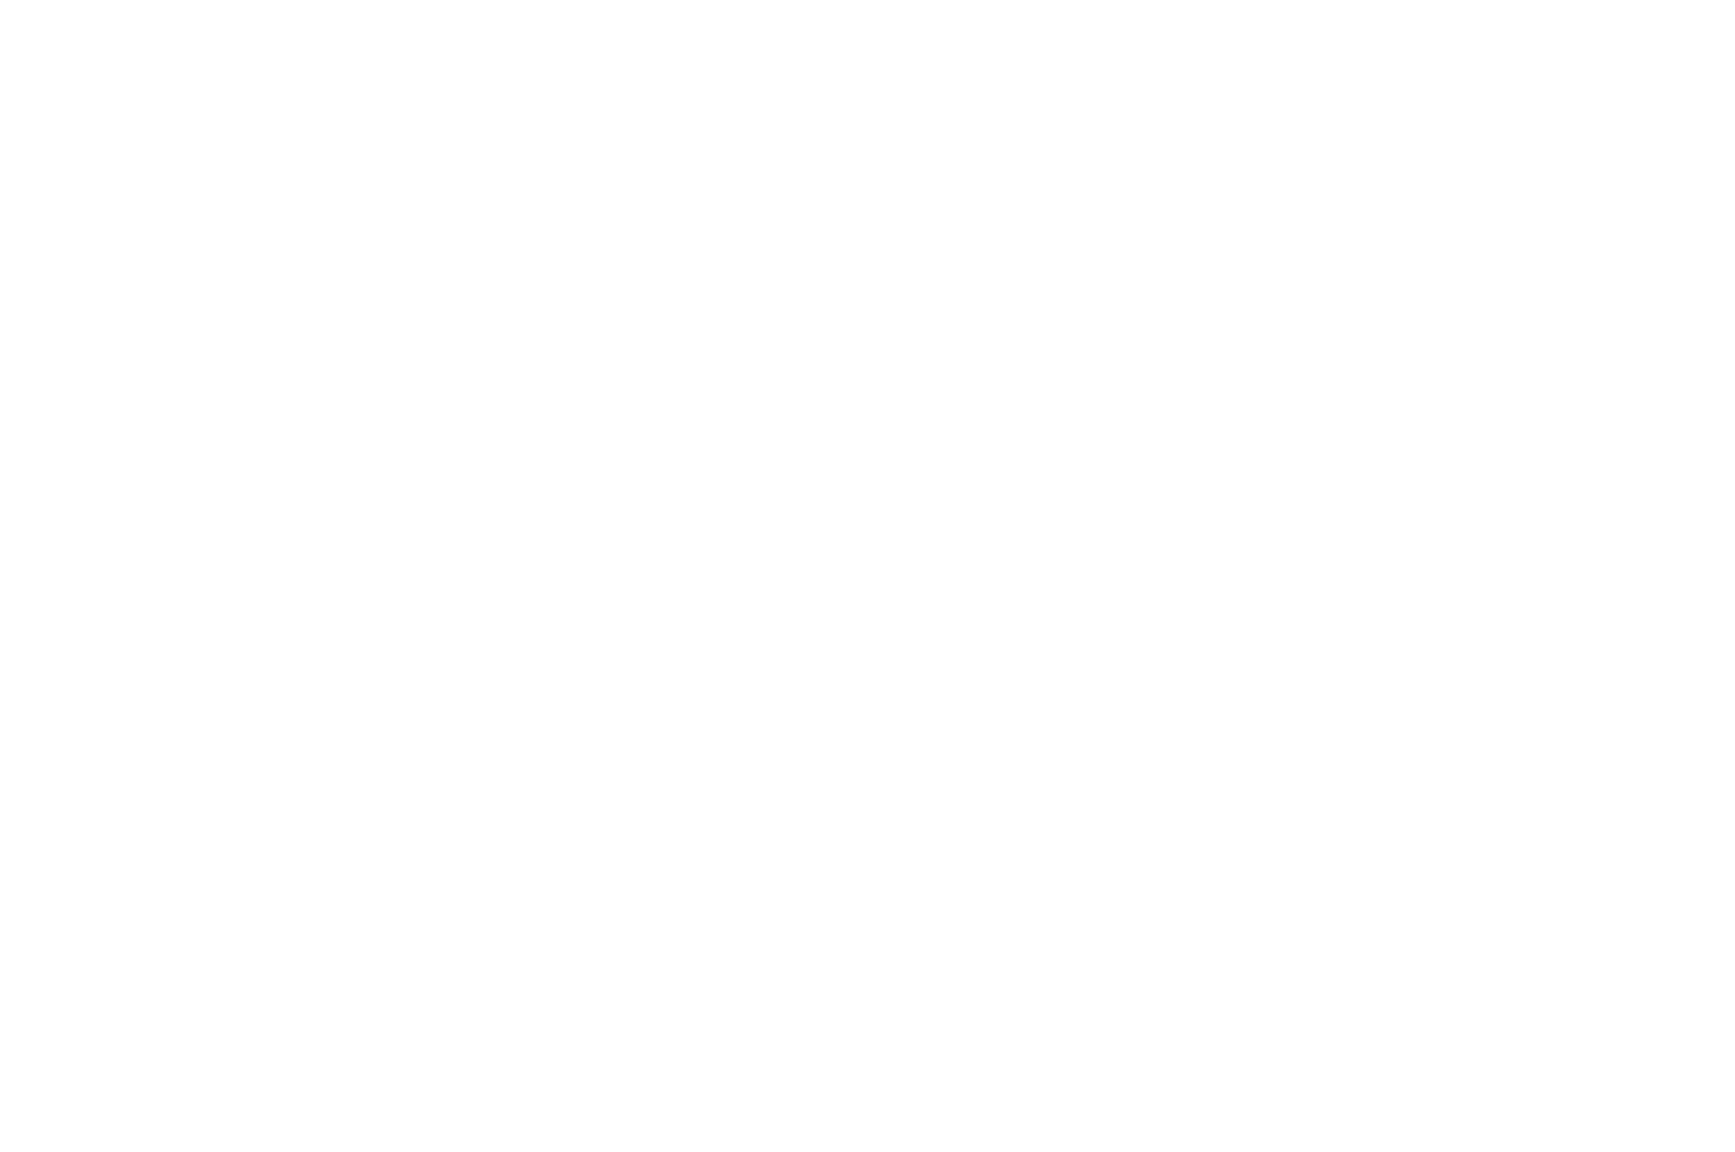 OFFICIAL SELECTION - Film Girl Film Festival - 2018.png